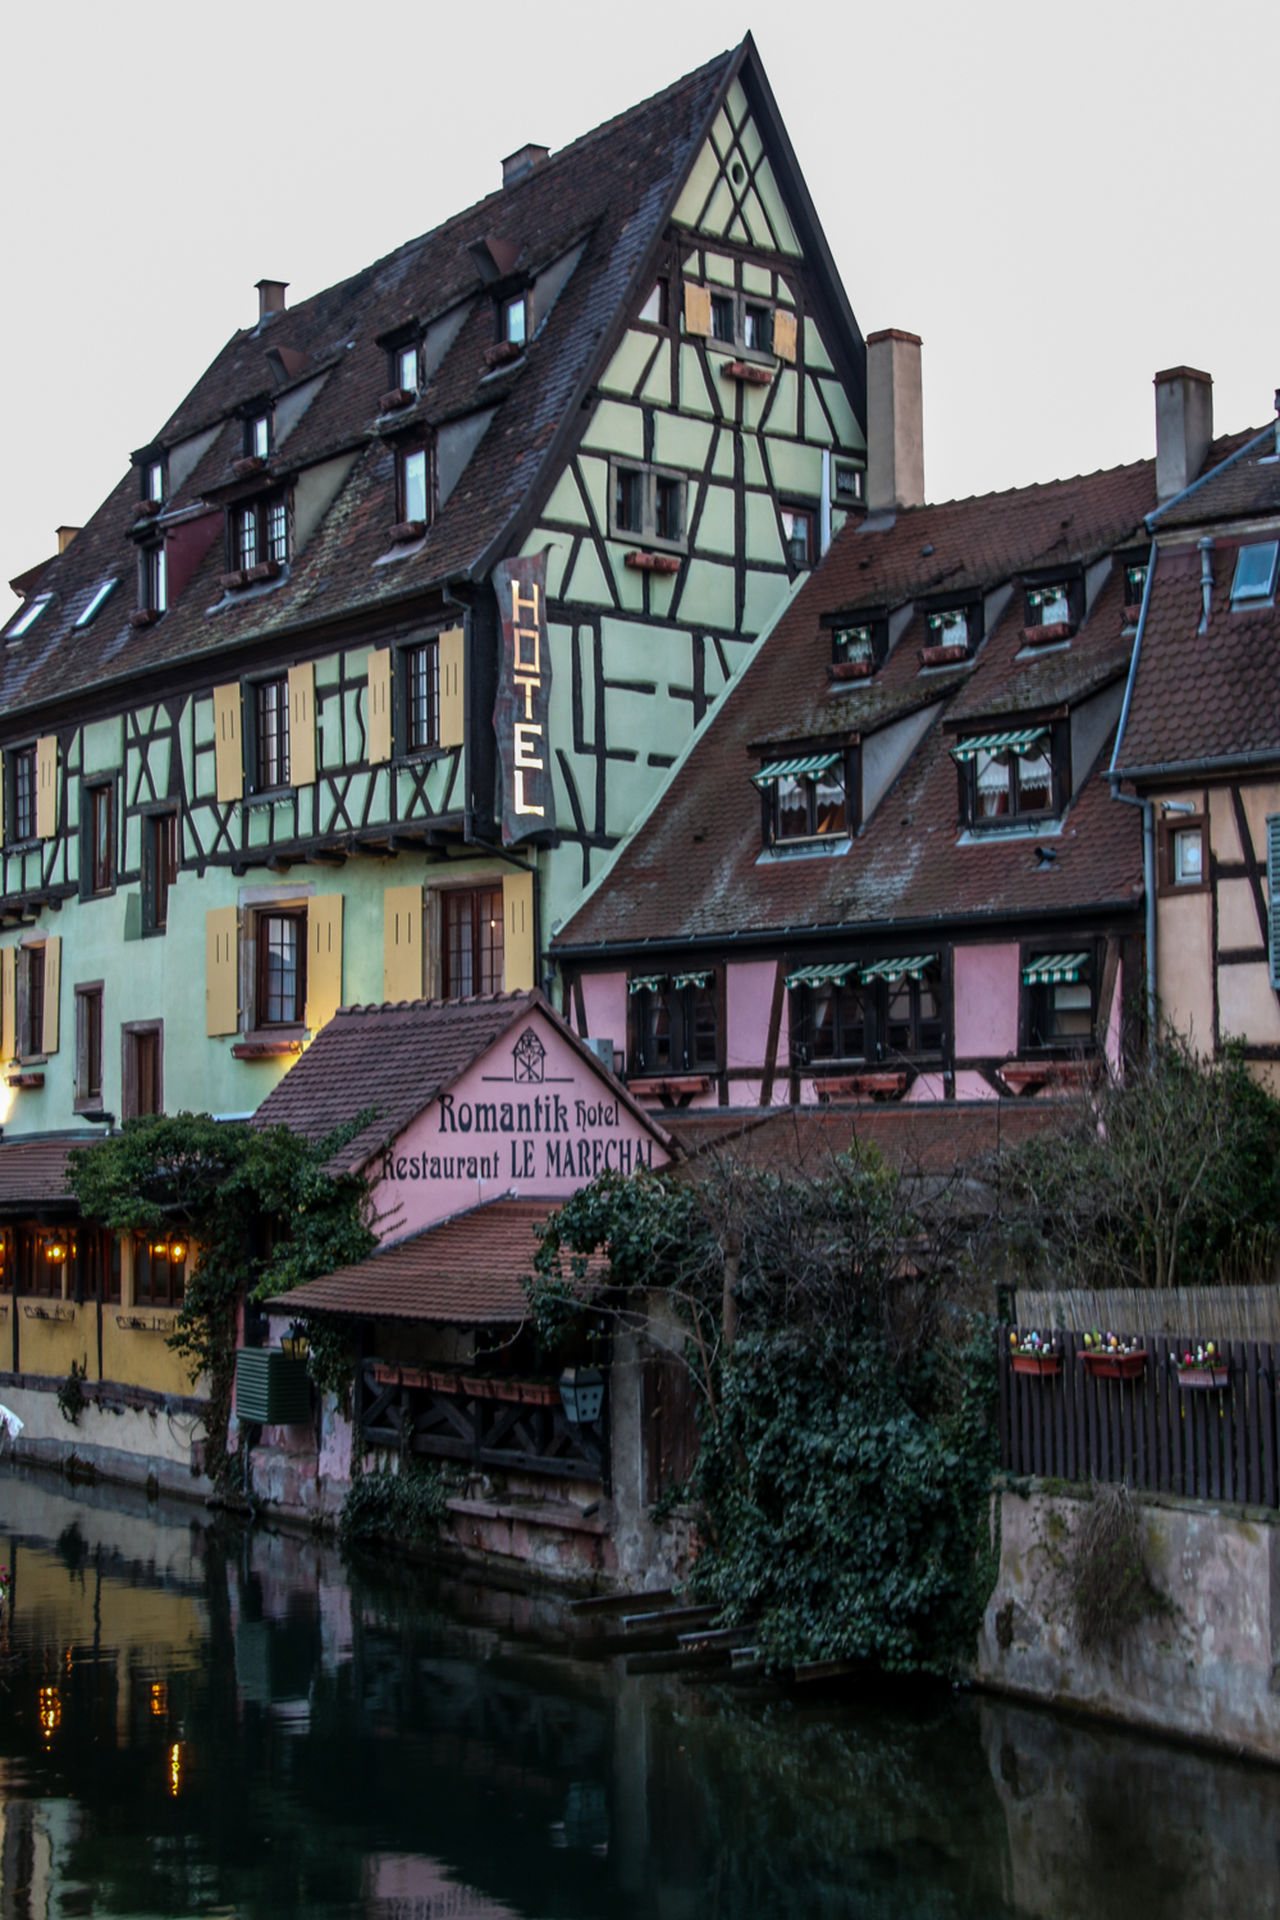 Architecture Building Exterior Built Structure City Citytrip Colmar Colmar Architecture Colmar France Colmar, Alsace, France Fachwerk Fachwerkhaus France No People Outdoors Reiselust River Timber Frame House Timbered House Traveling Travellover Water